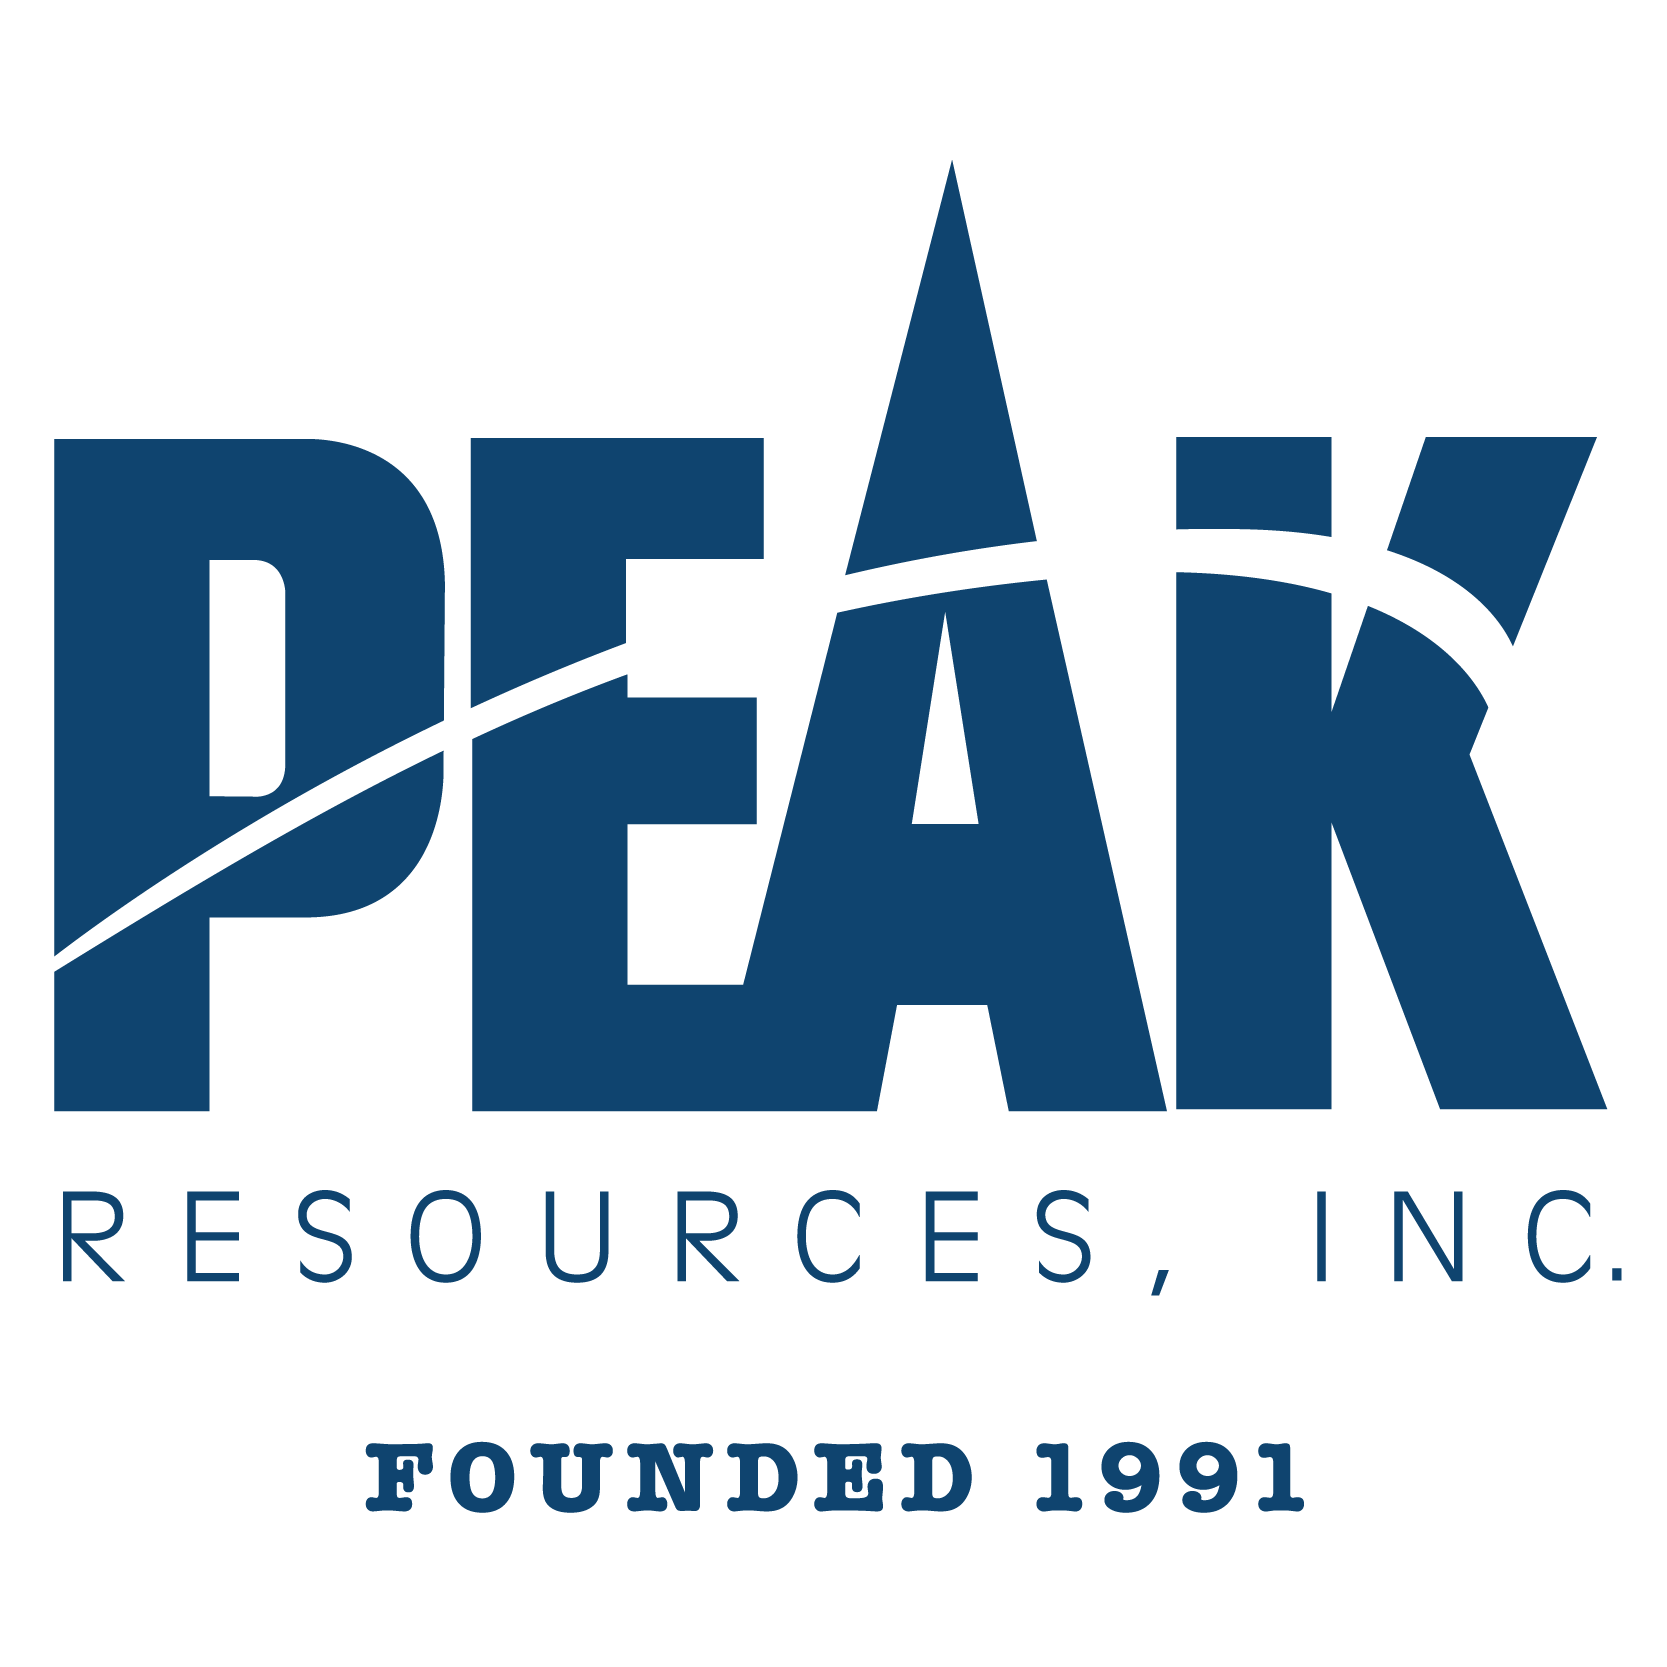 PEAK Resources, Inc.